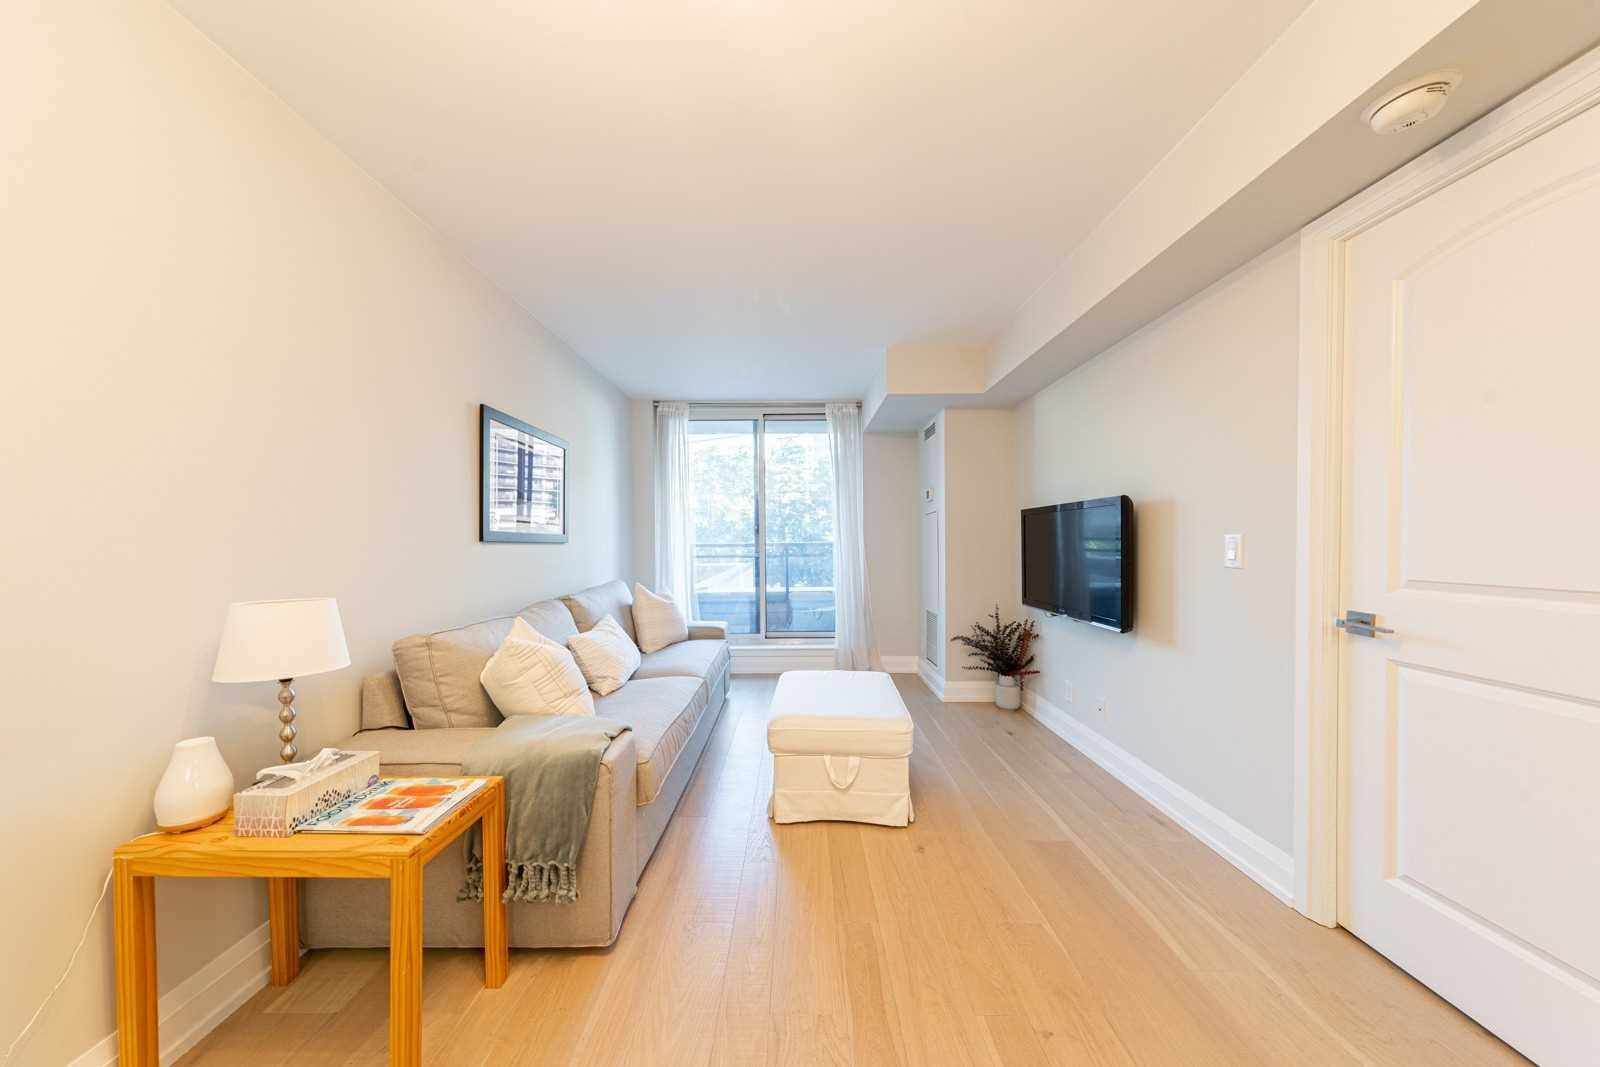 55 De Boers Dr, unit 202 for rent in York University Heights - image #2